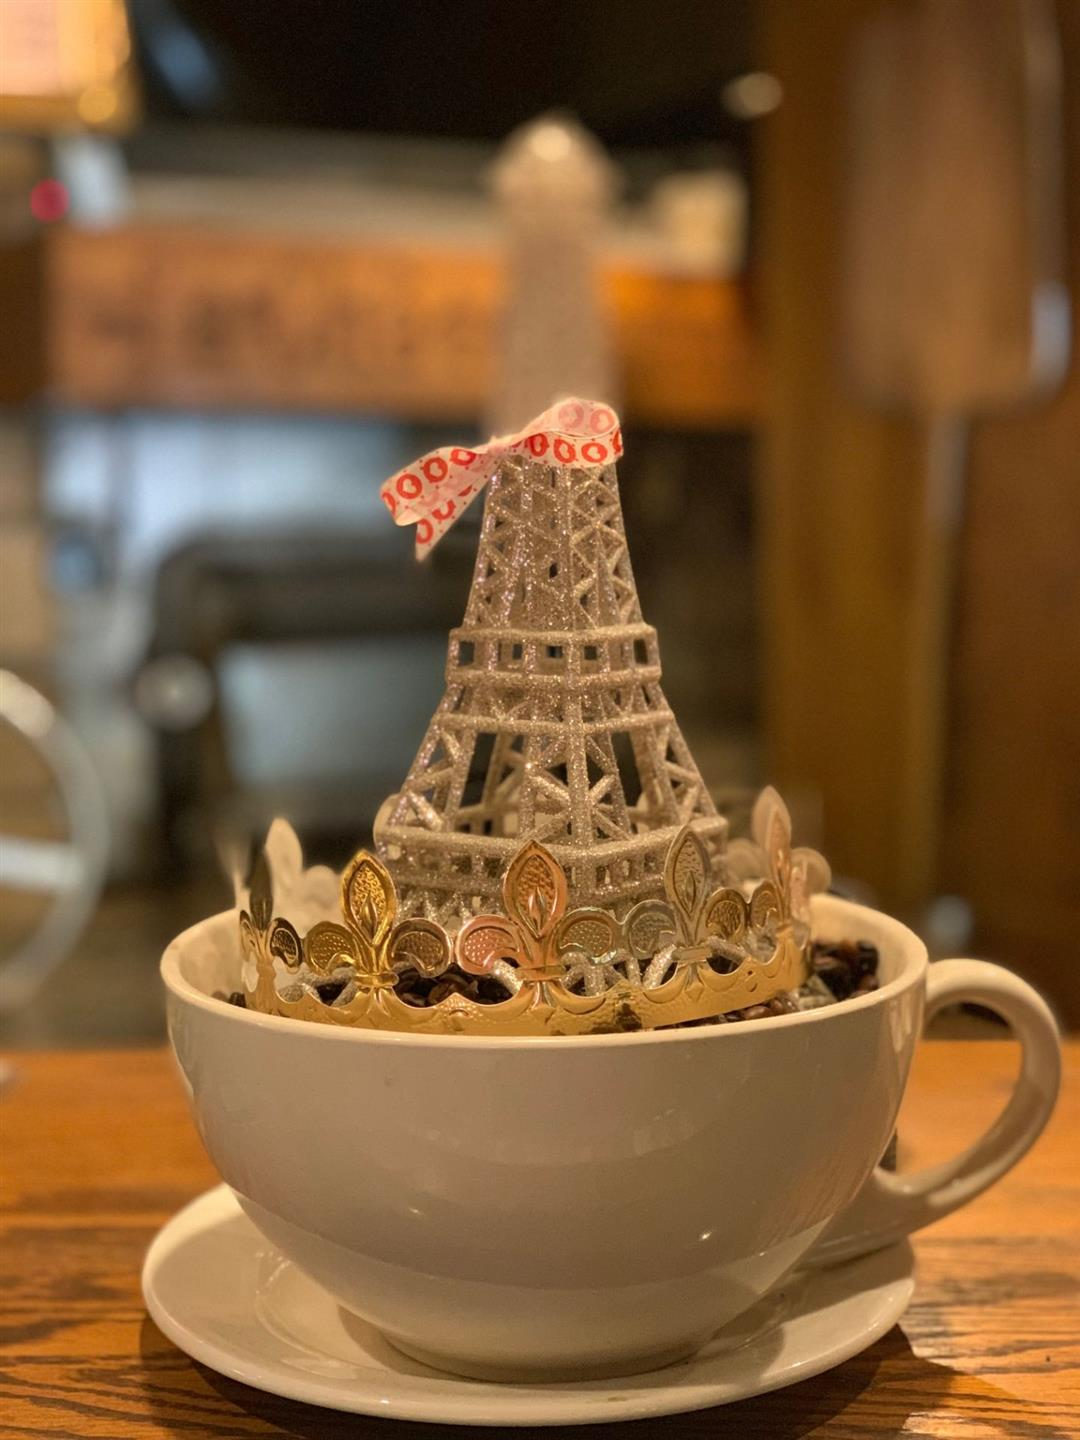 miniature eifel tower decoration in a mug